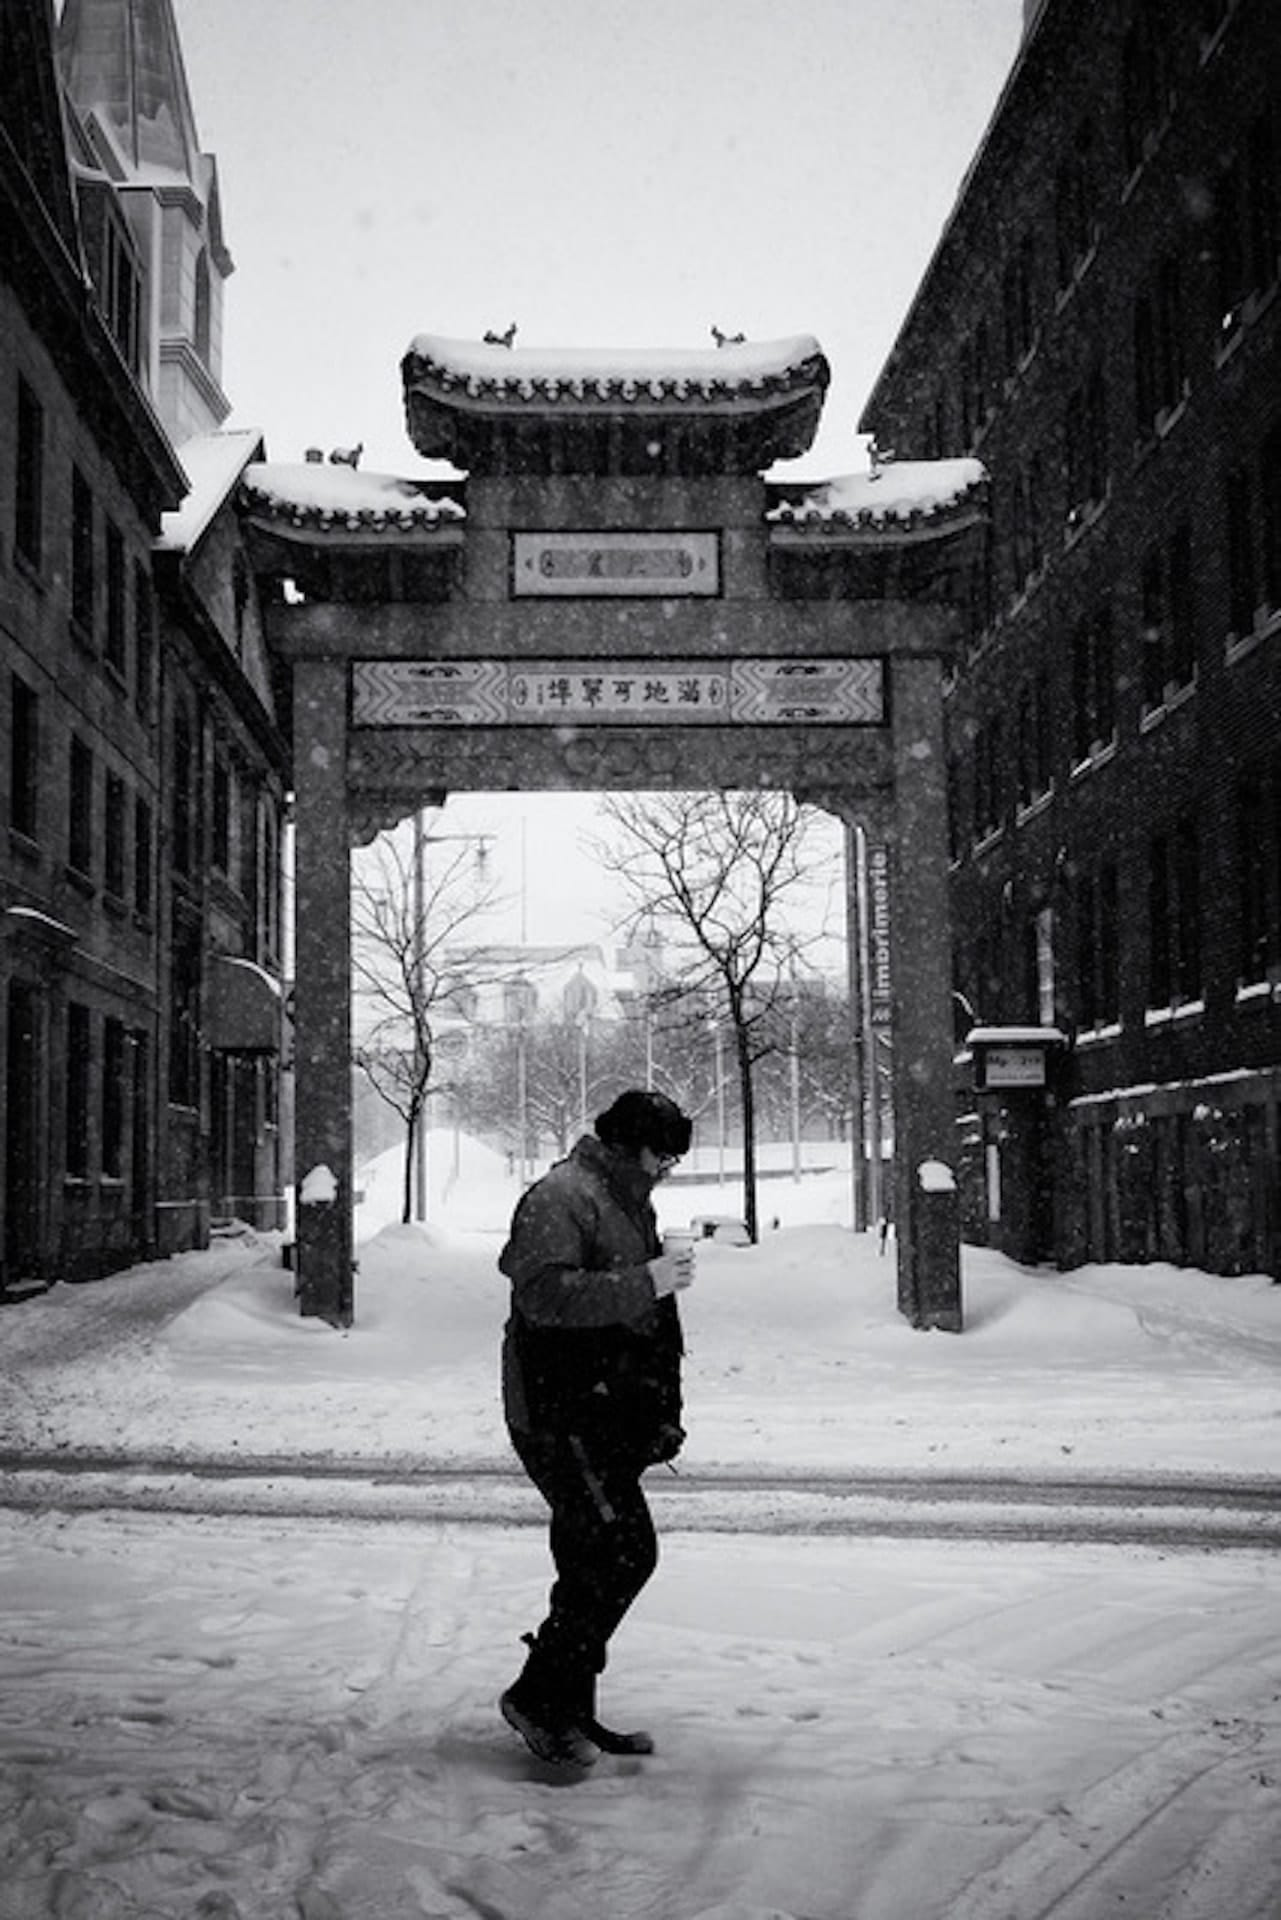 """Snowy day"" Street Photograph by Jeff Stephens"